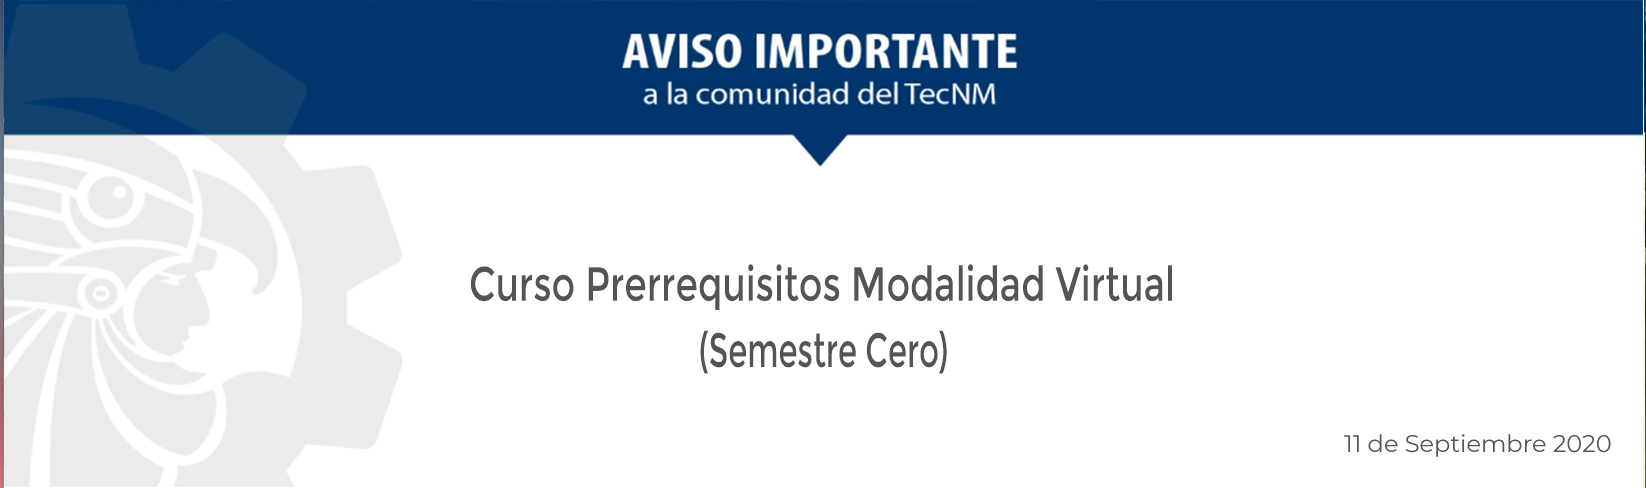 Convocatoria Prerrequisitos Actualizada